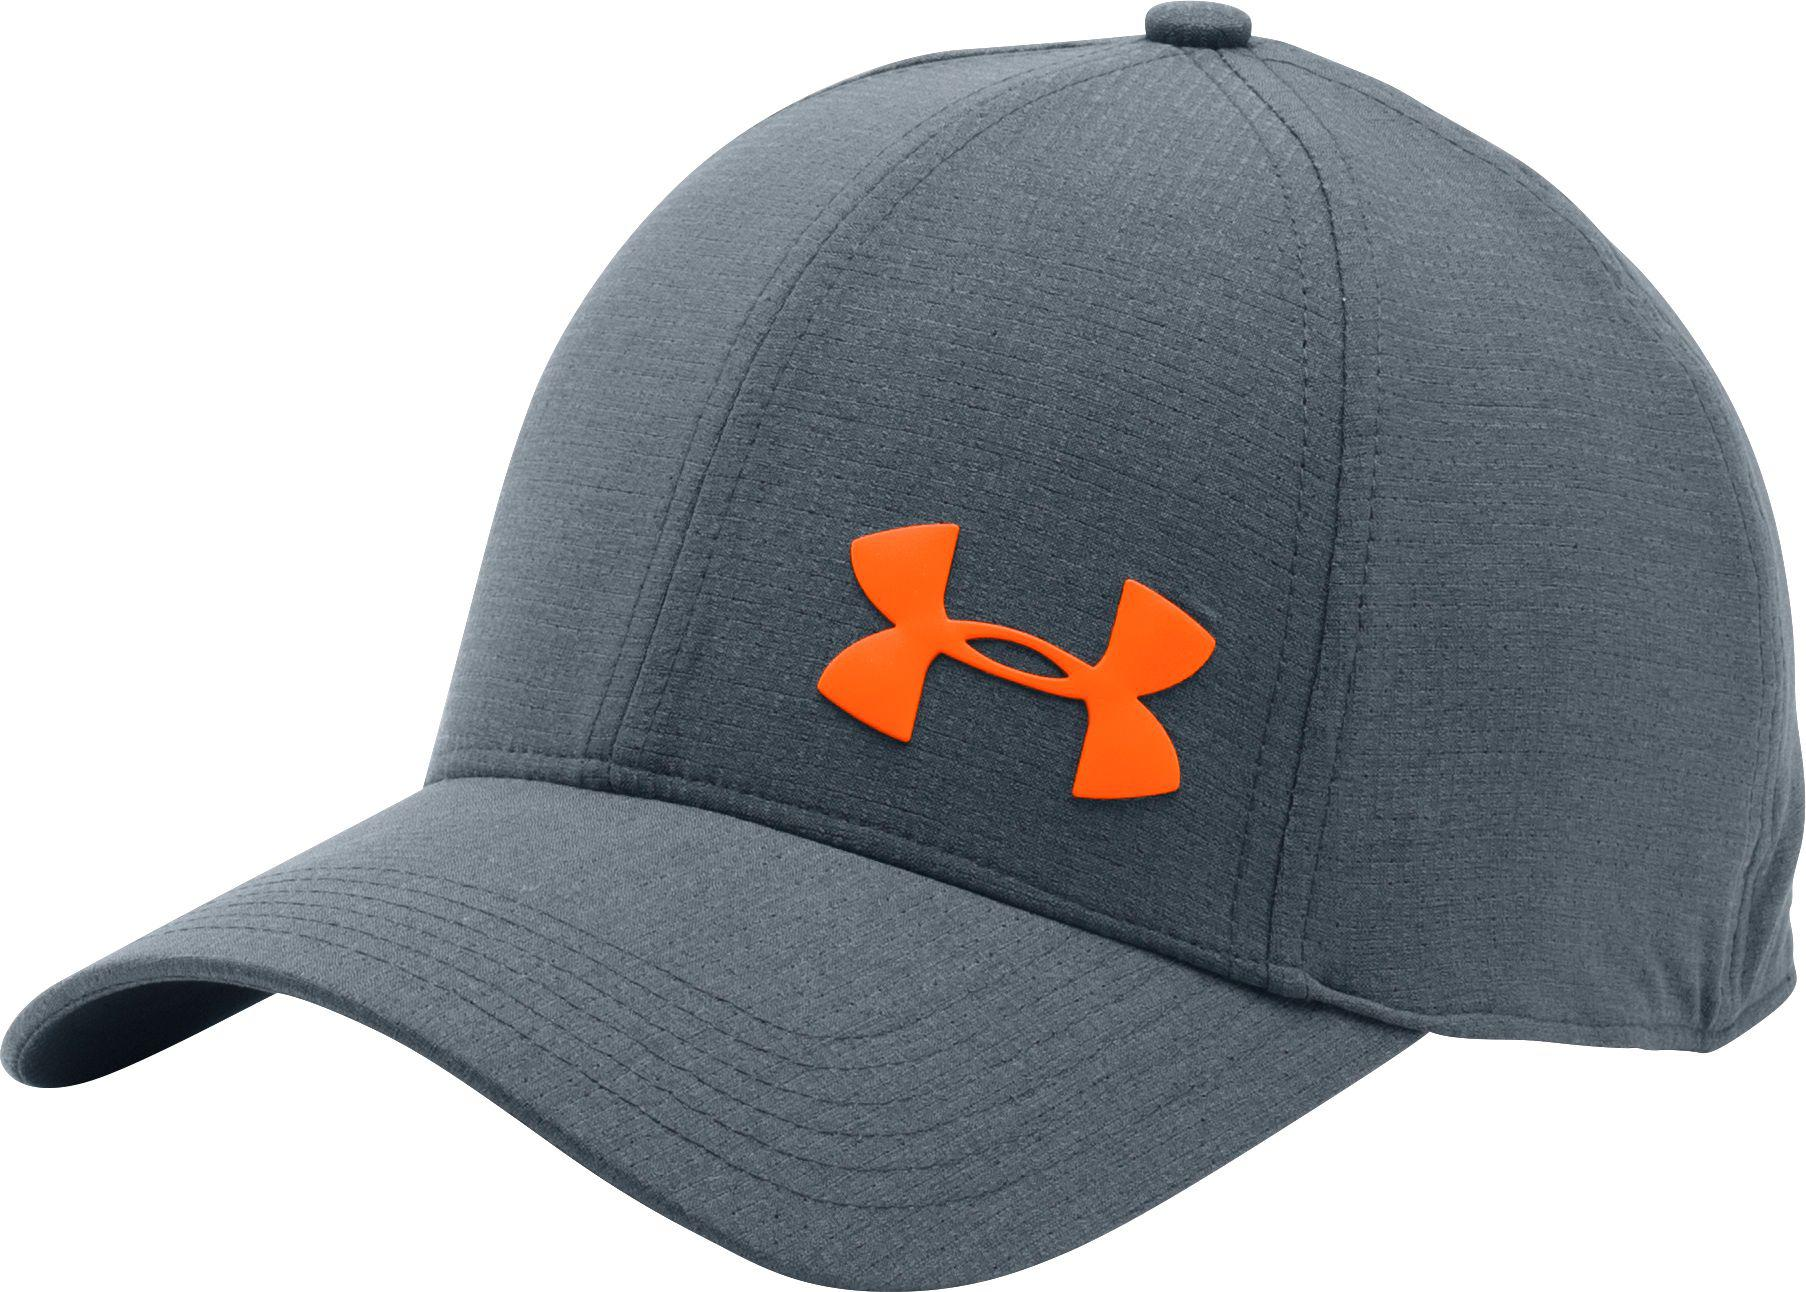 Lyst - Under Armour Airvent Core Hat in Gray for Men 53543dddc9d1